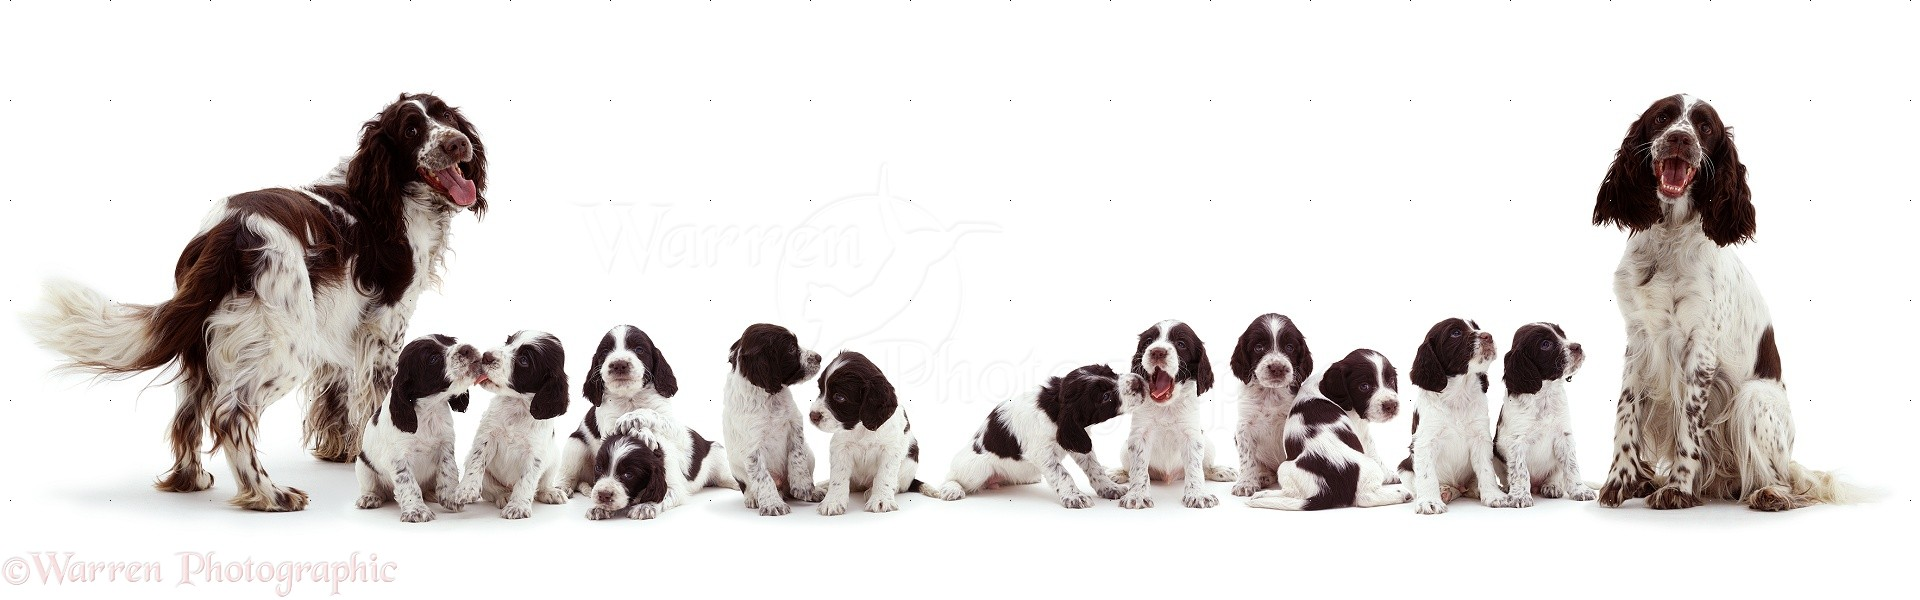 English Water Spaniel Puppies: English English Springer Spaniel Family Breed